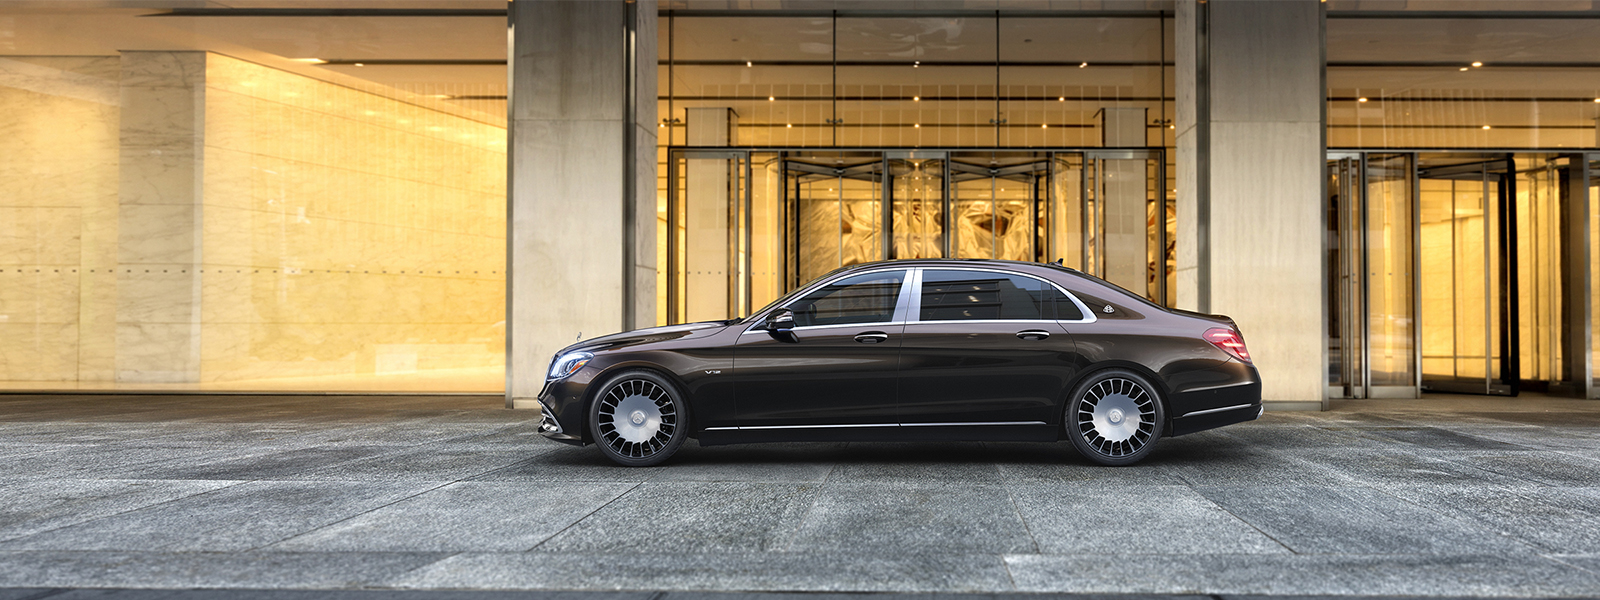 2018 maybach models. perfect maybach 2018maybachsedanclassheroch1djpg in 2018 maybach models